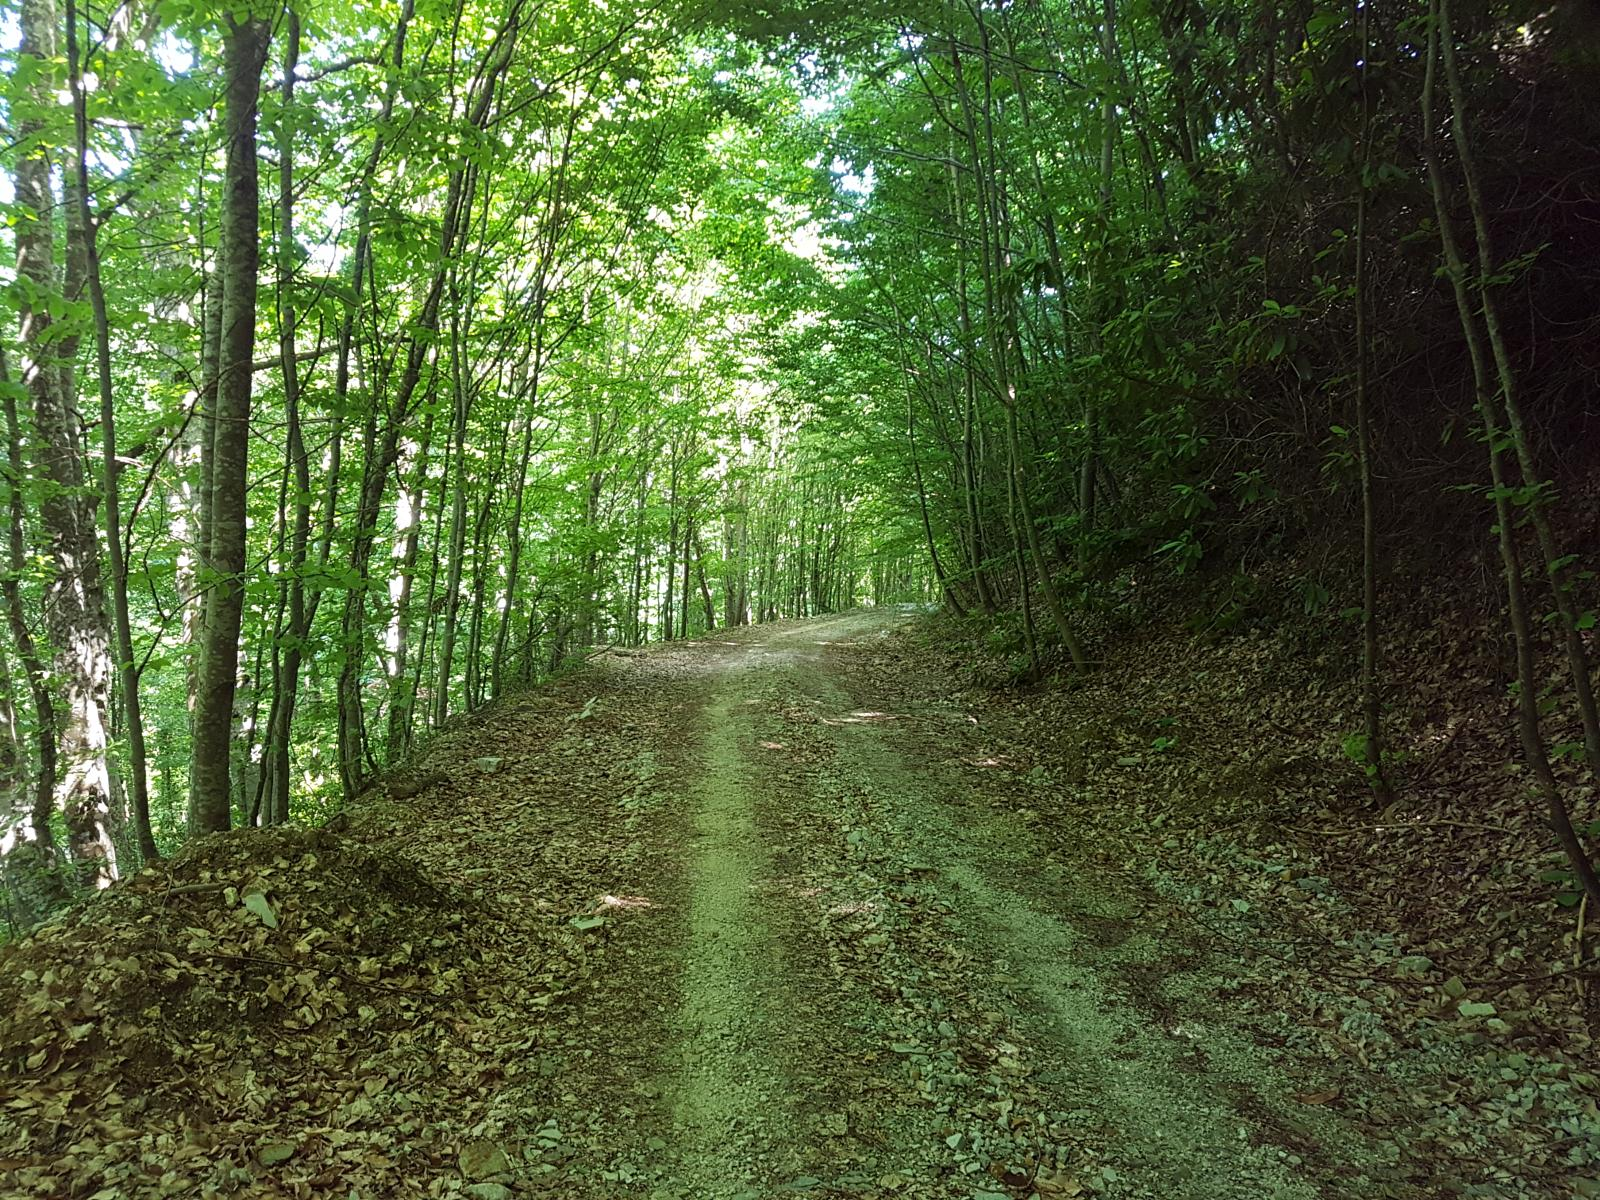 Wikiloc Picture Of Orman Yolu Forest Road 1 1 5